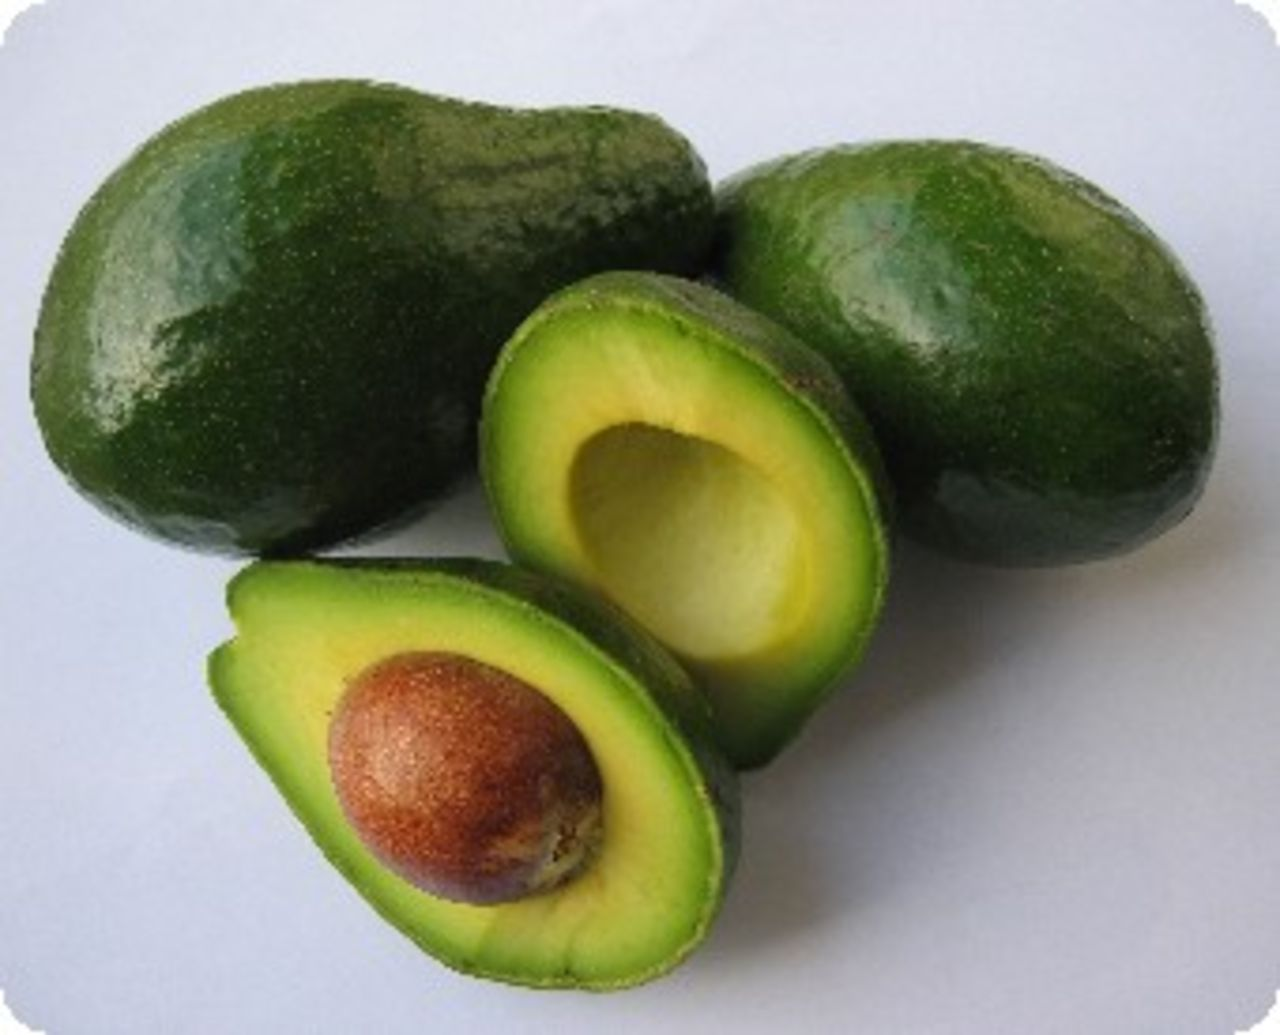 http://keretailmu.files.wordpress.com/2009/12/avocado.jpg